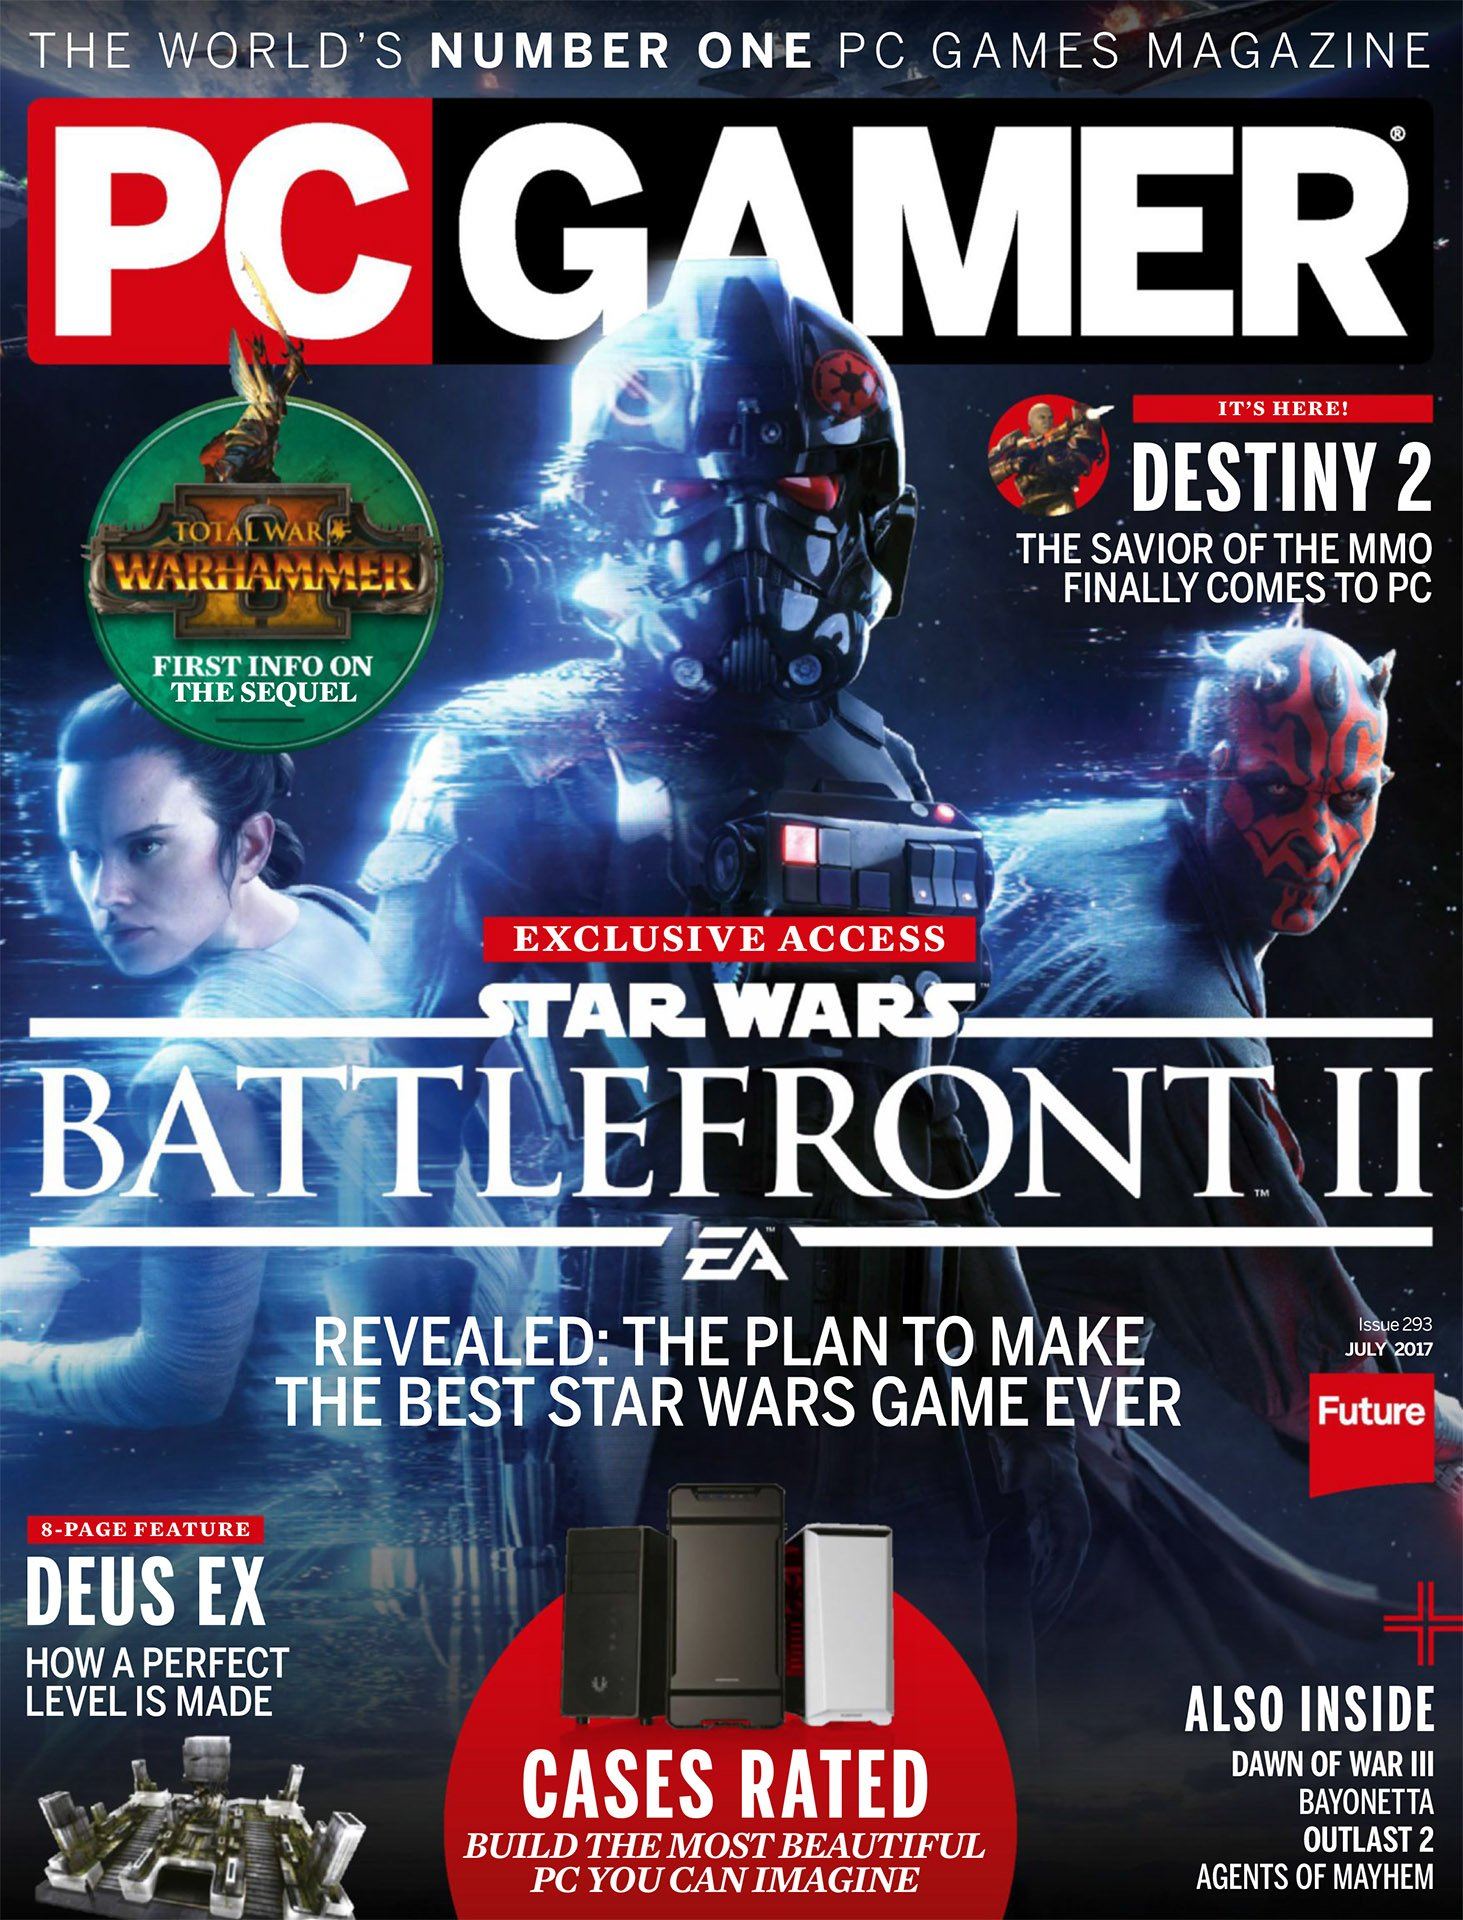 PC Gamer Issue 293 July 2017